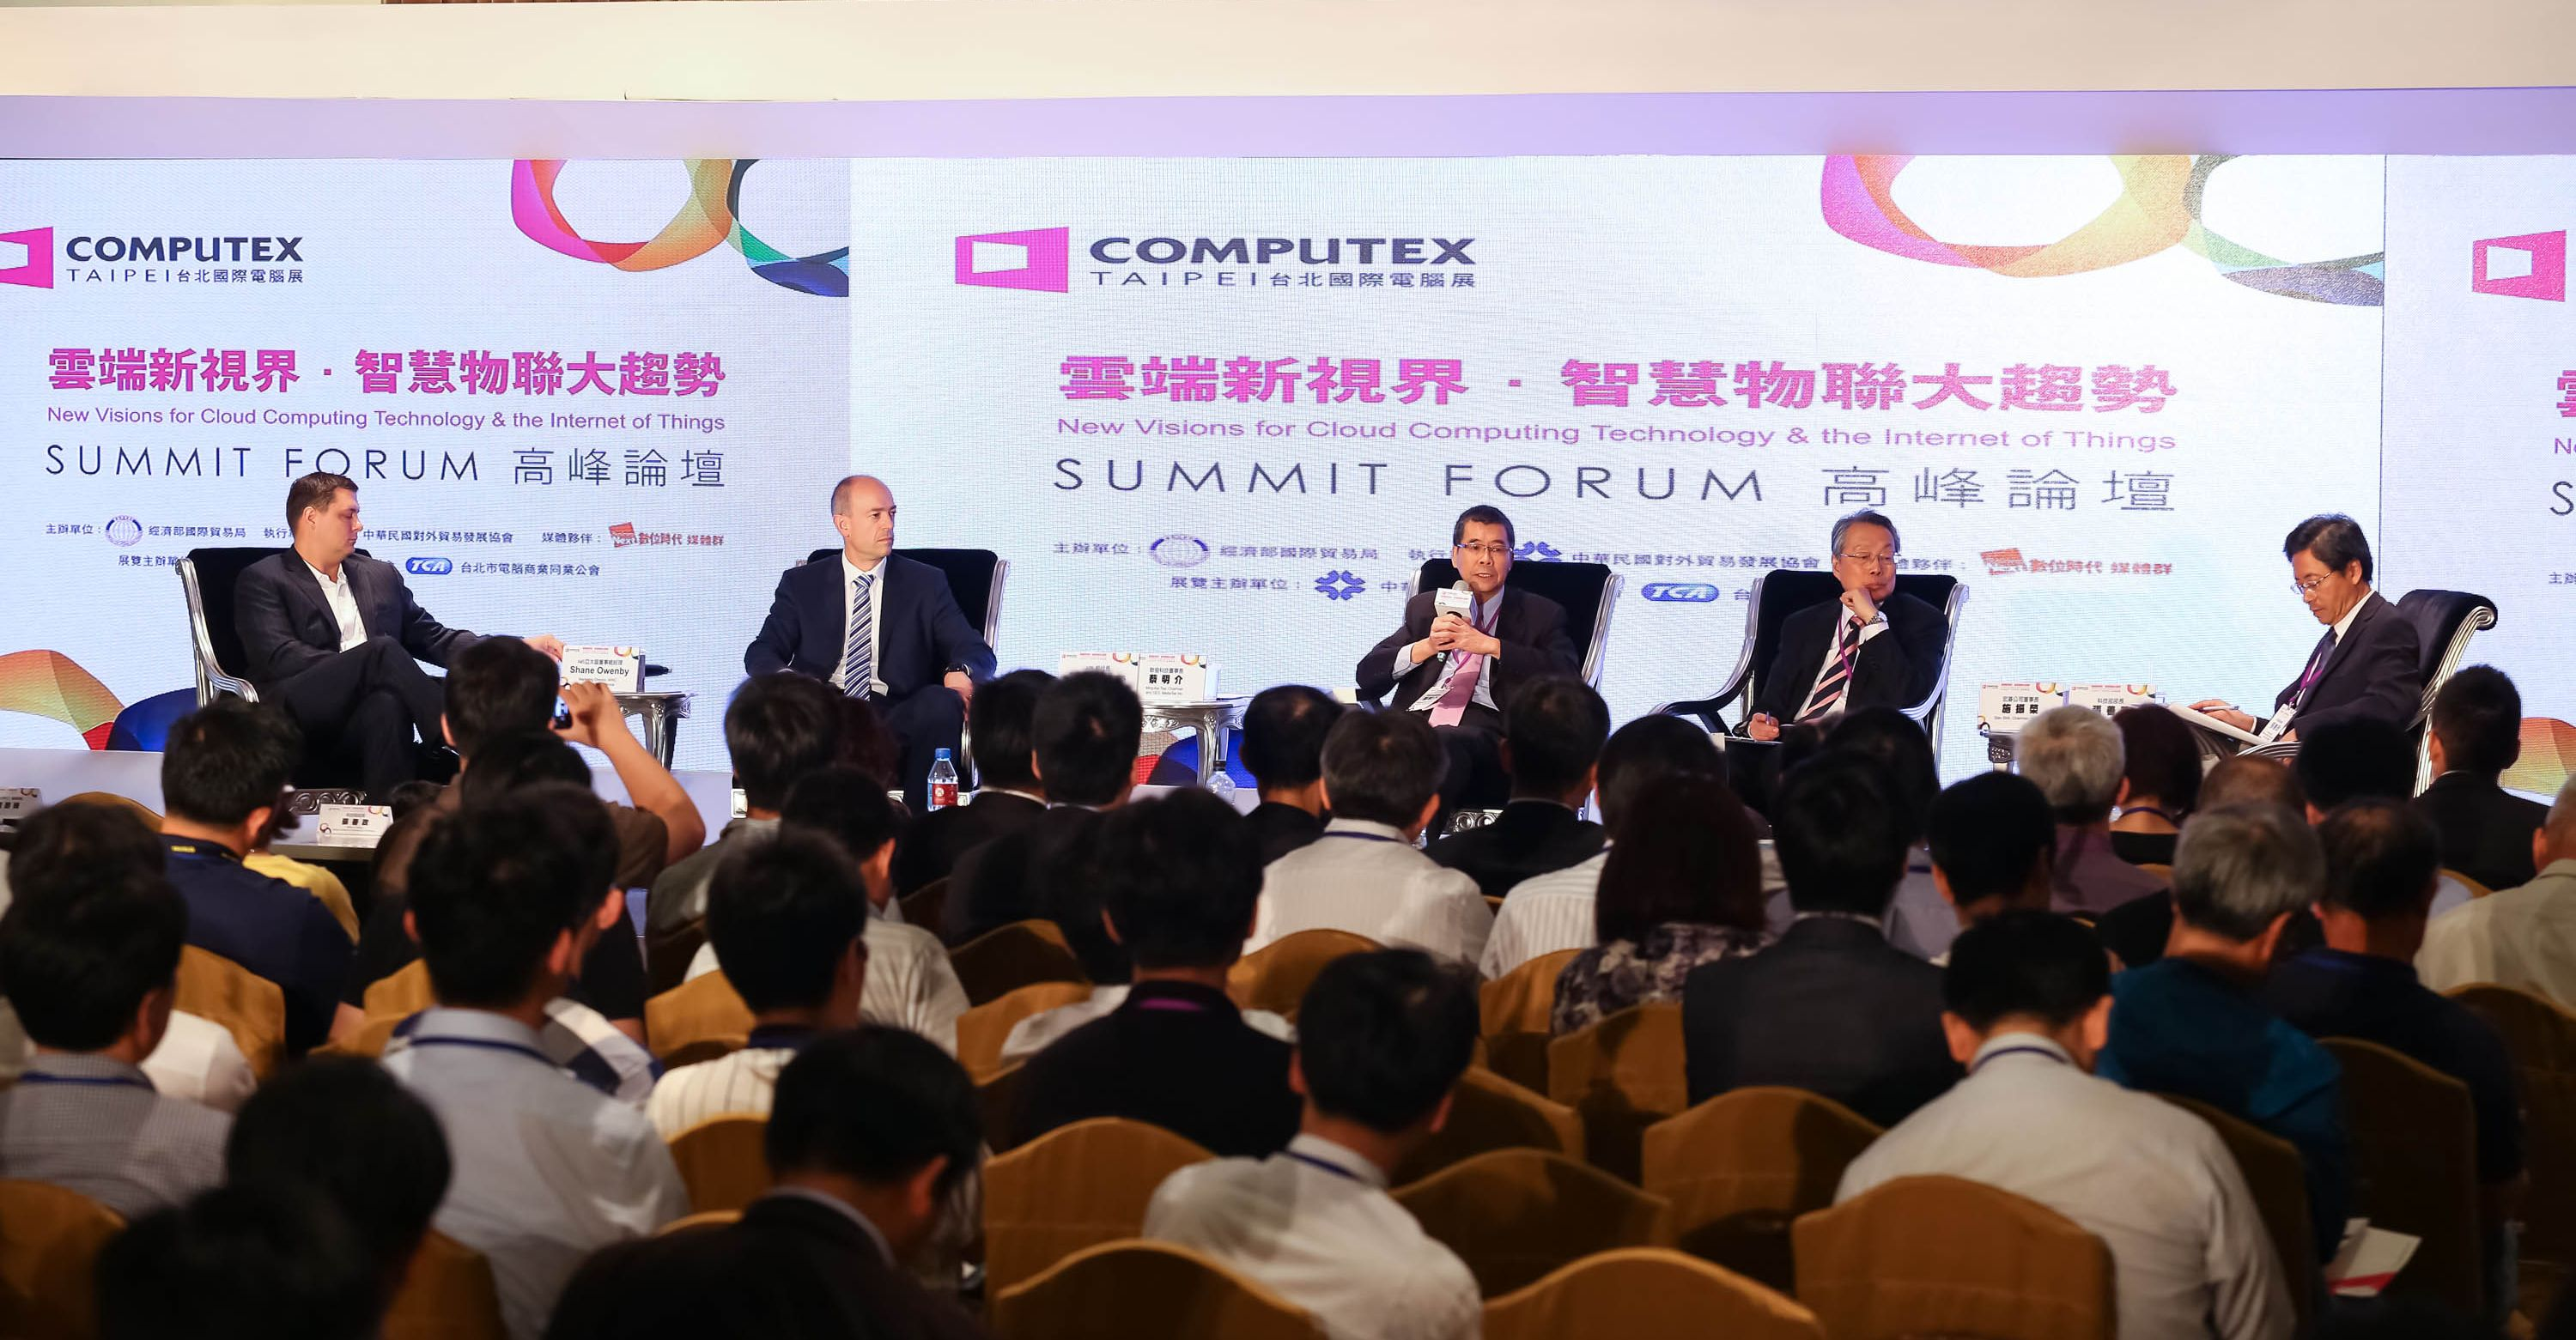 computex-2014-summit-groupphoto